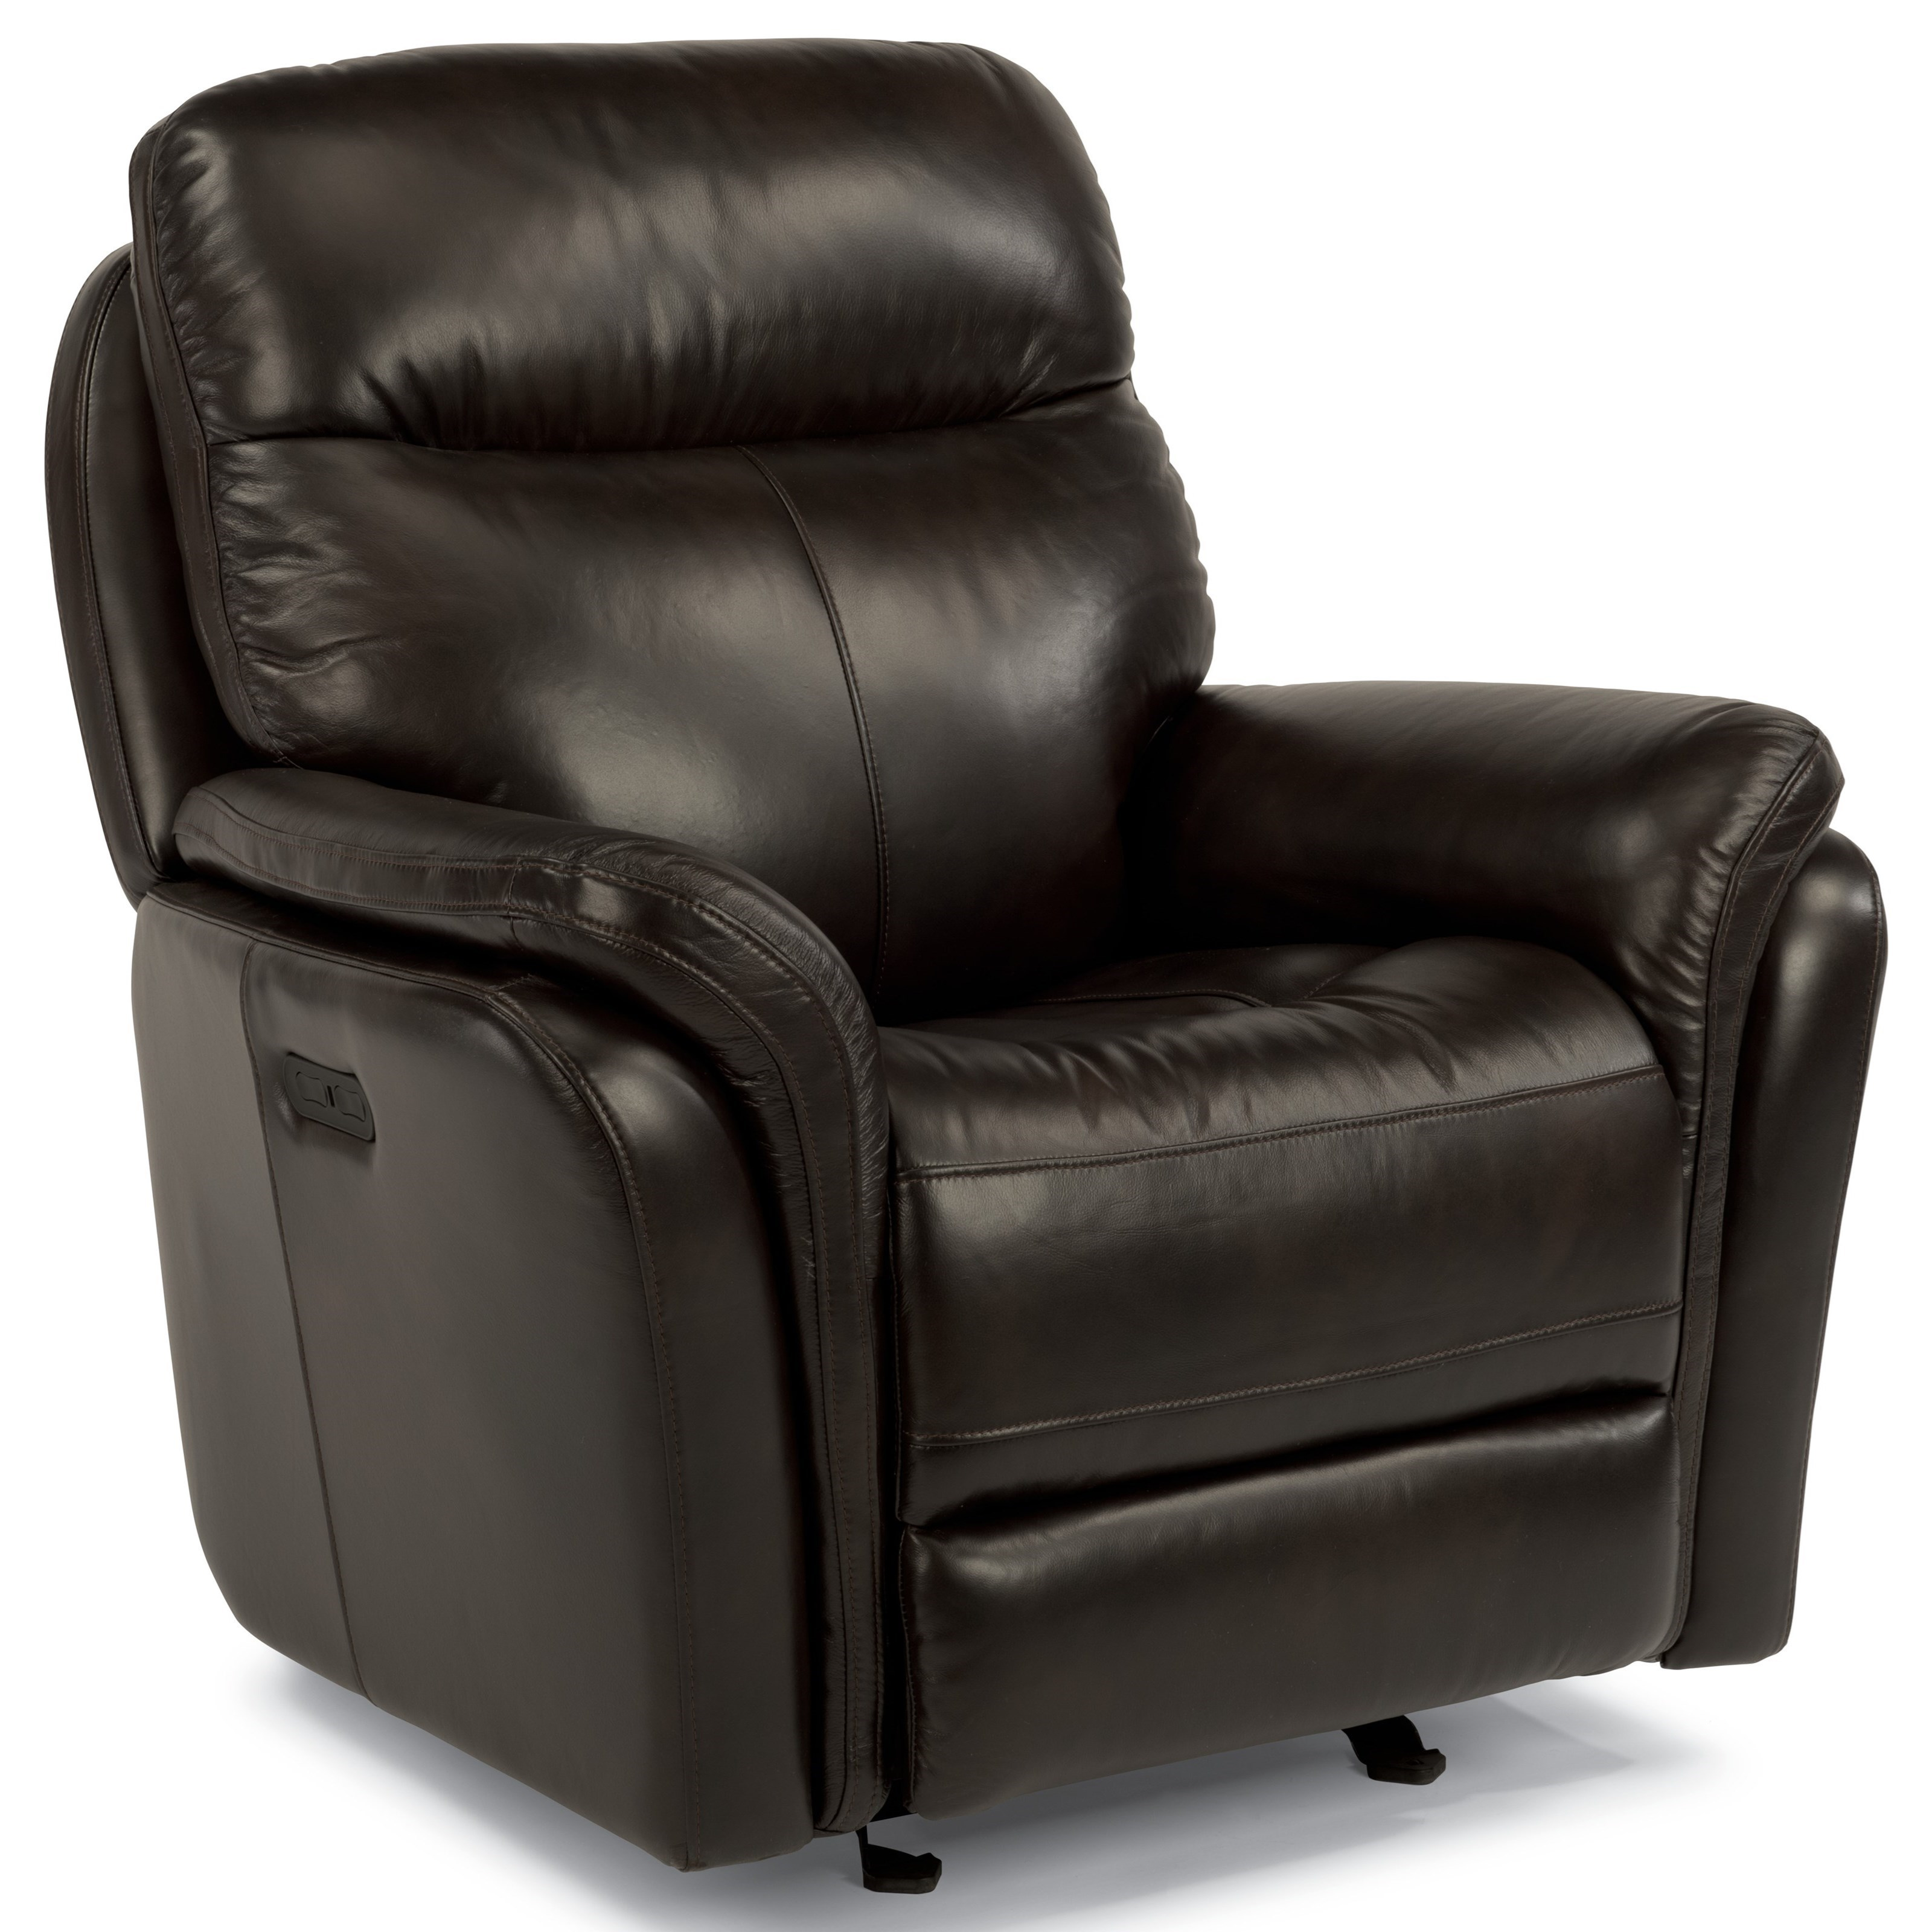 Flexsteel Latitudes Zoey 1653 54p Power Gliding Recliner With Usb Ports Furniture And